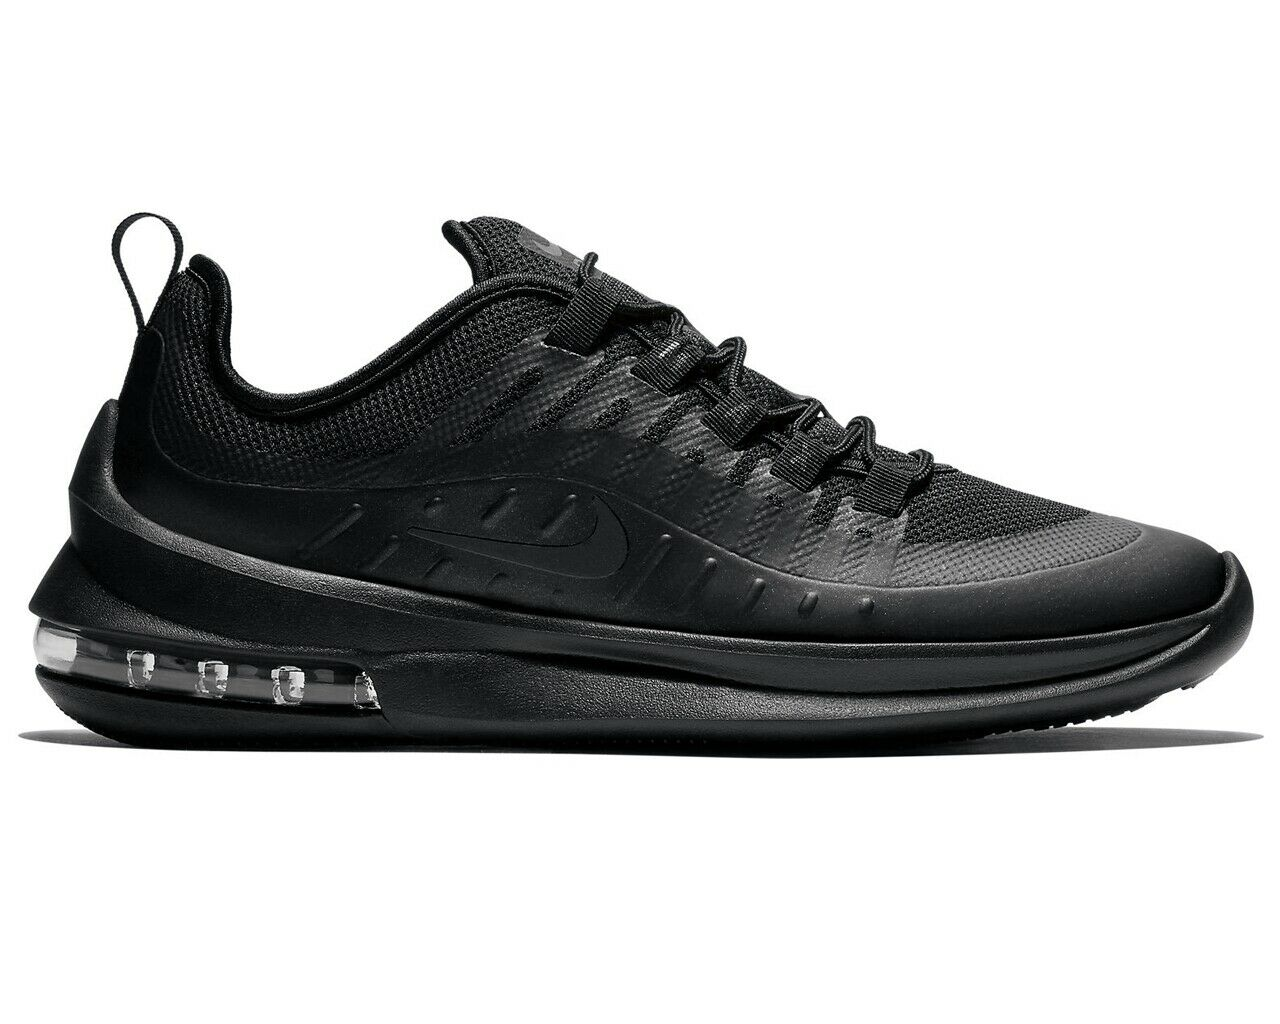 Nike Air Max Axis AA2146 006 Mens Trainers Black Running Gym Shoes